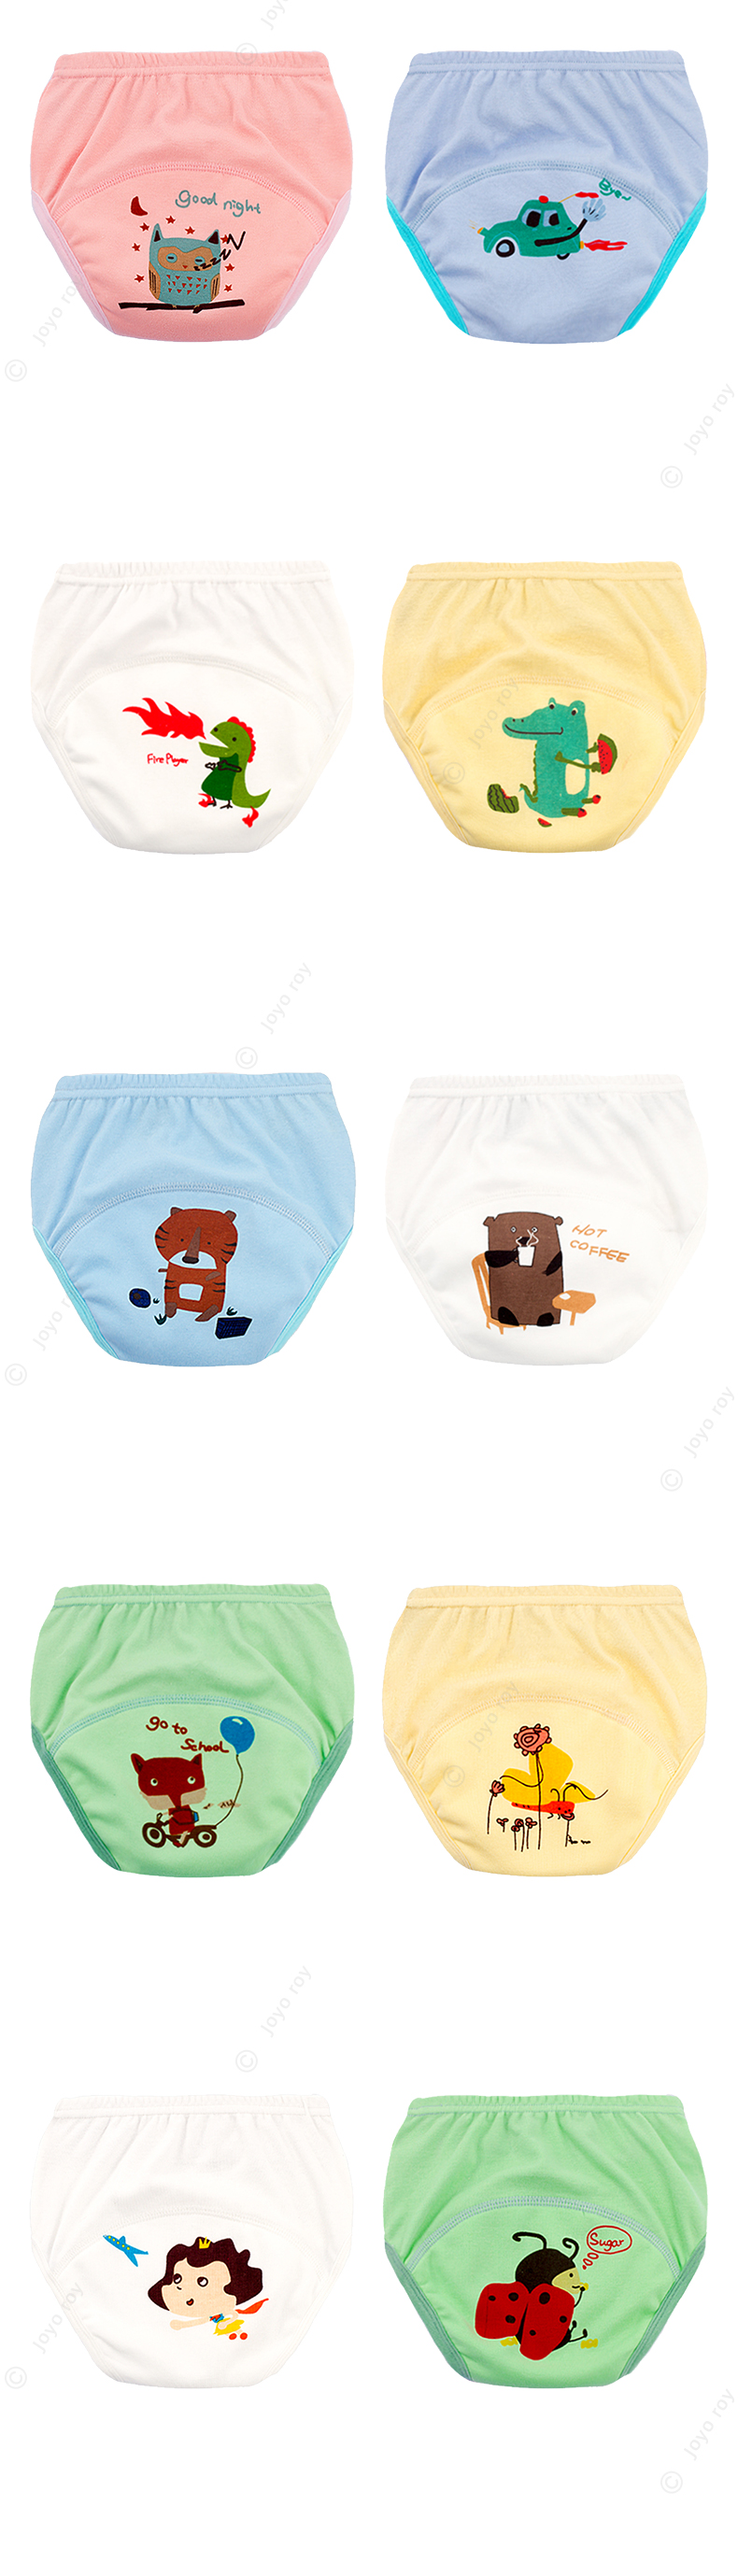 Baby Pants Diaper Reusable Training Pants For Baby